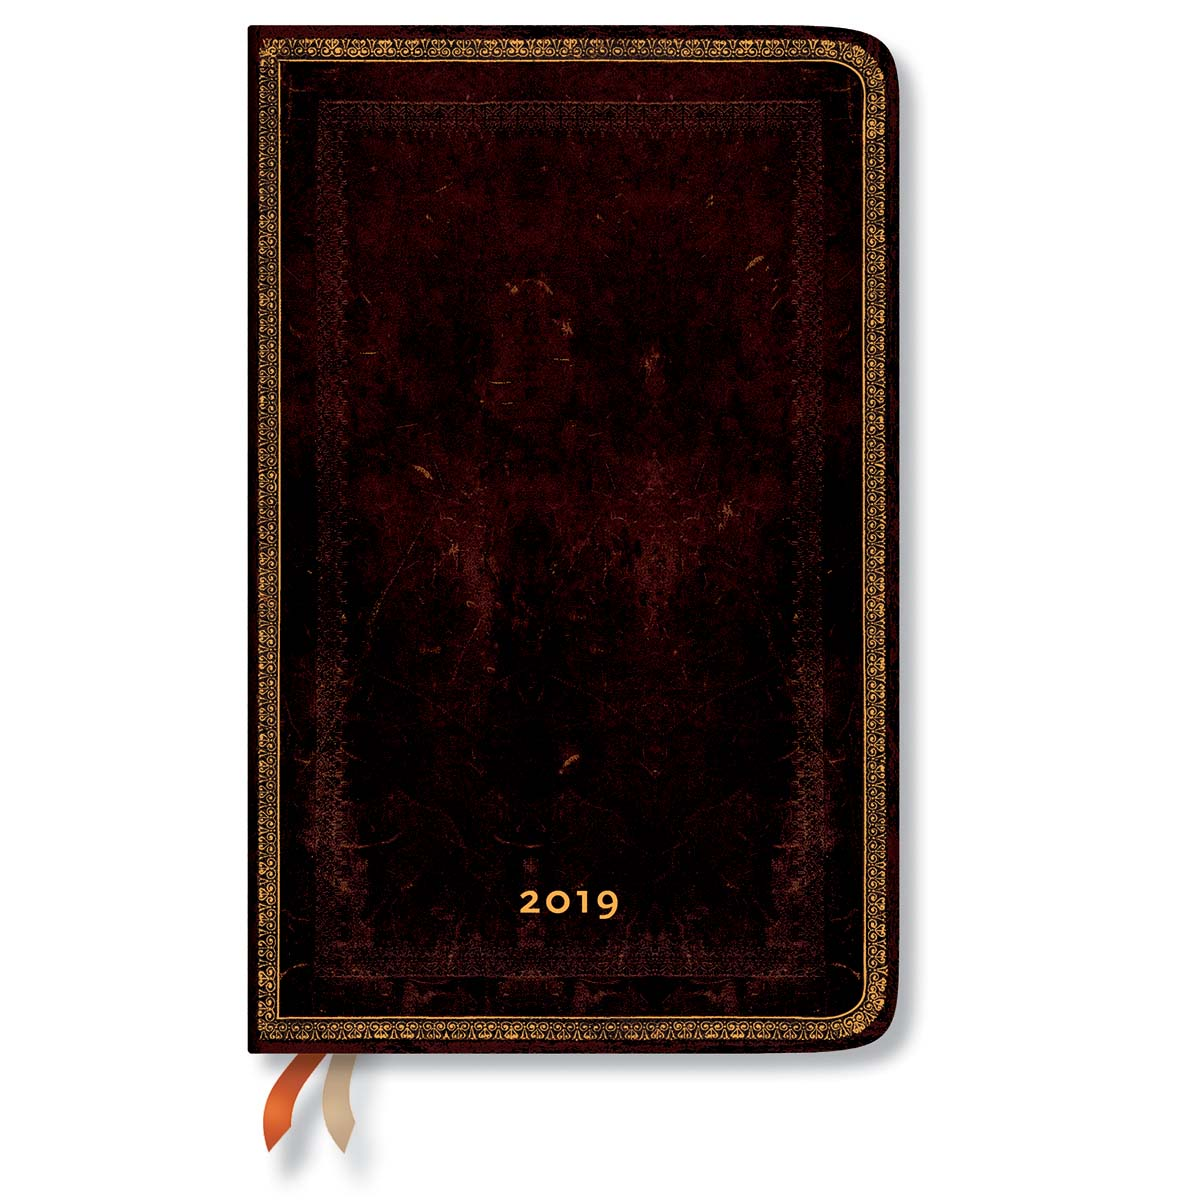 Paperblanks Maxi Black Moroccan 2019 Week-At-A-Time Planner